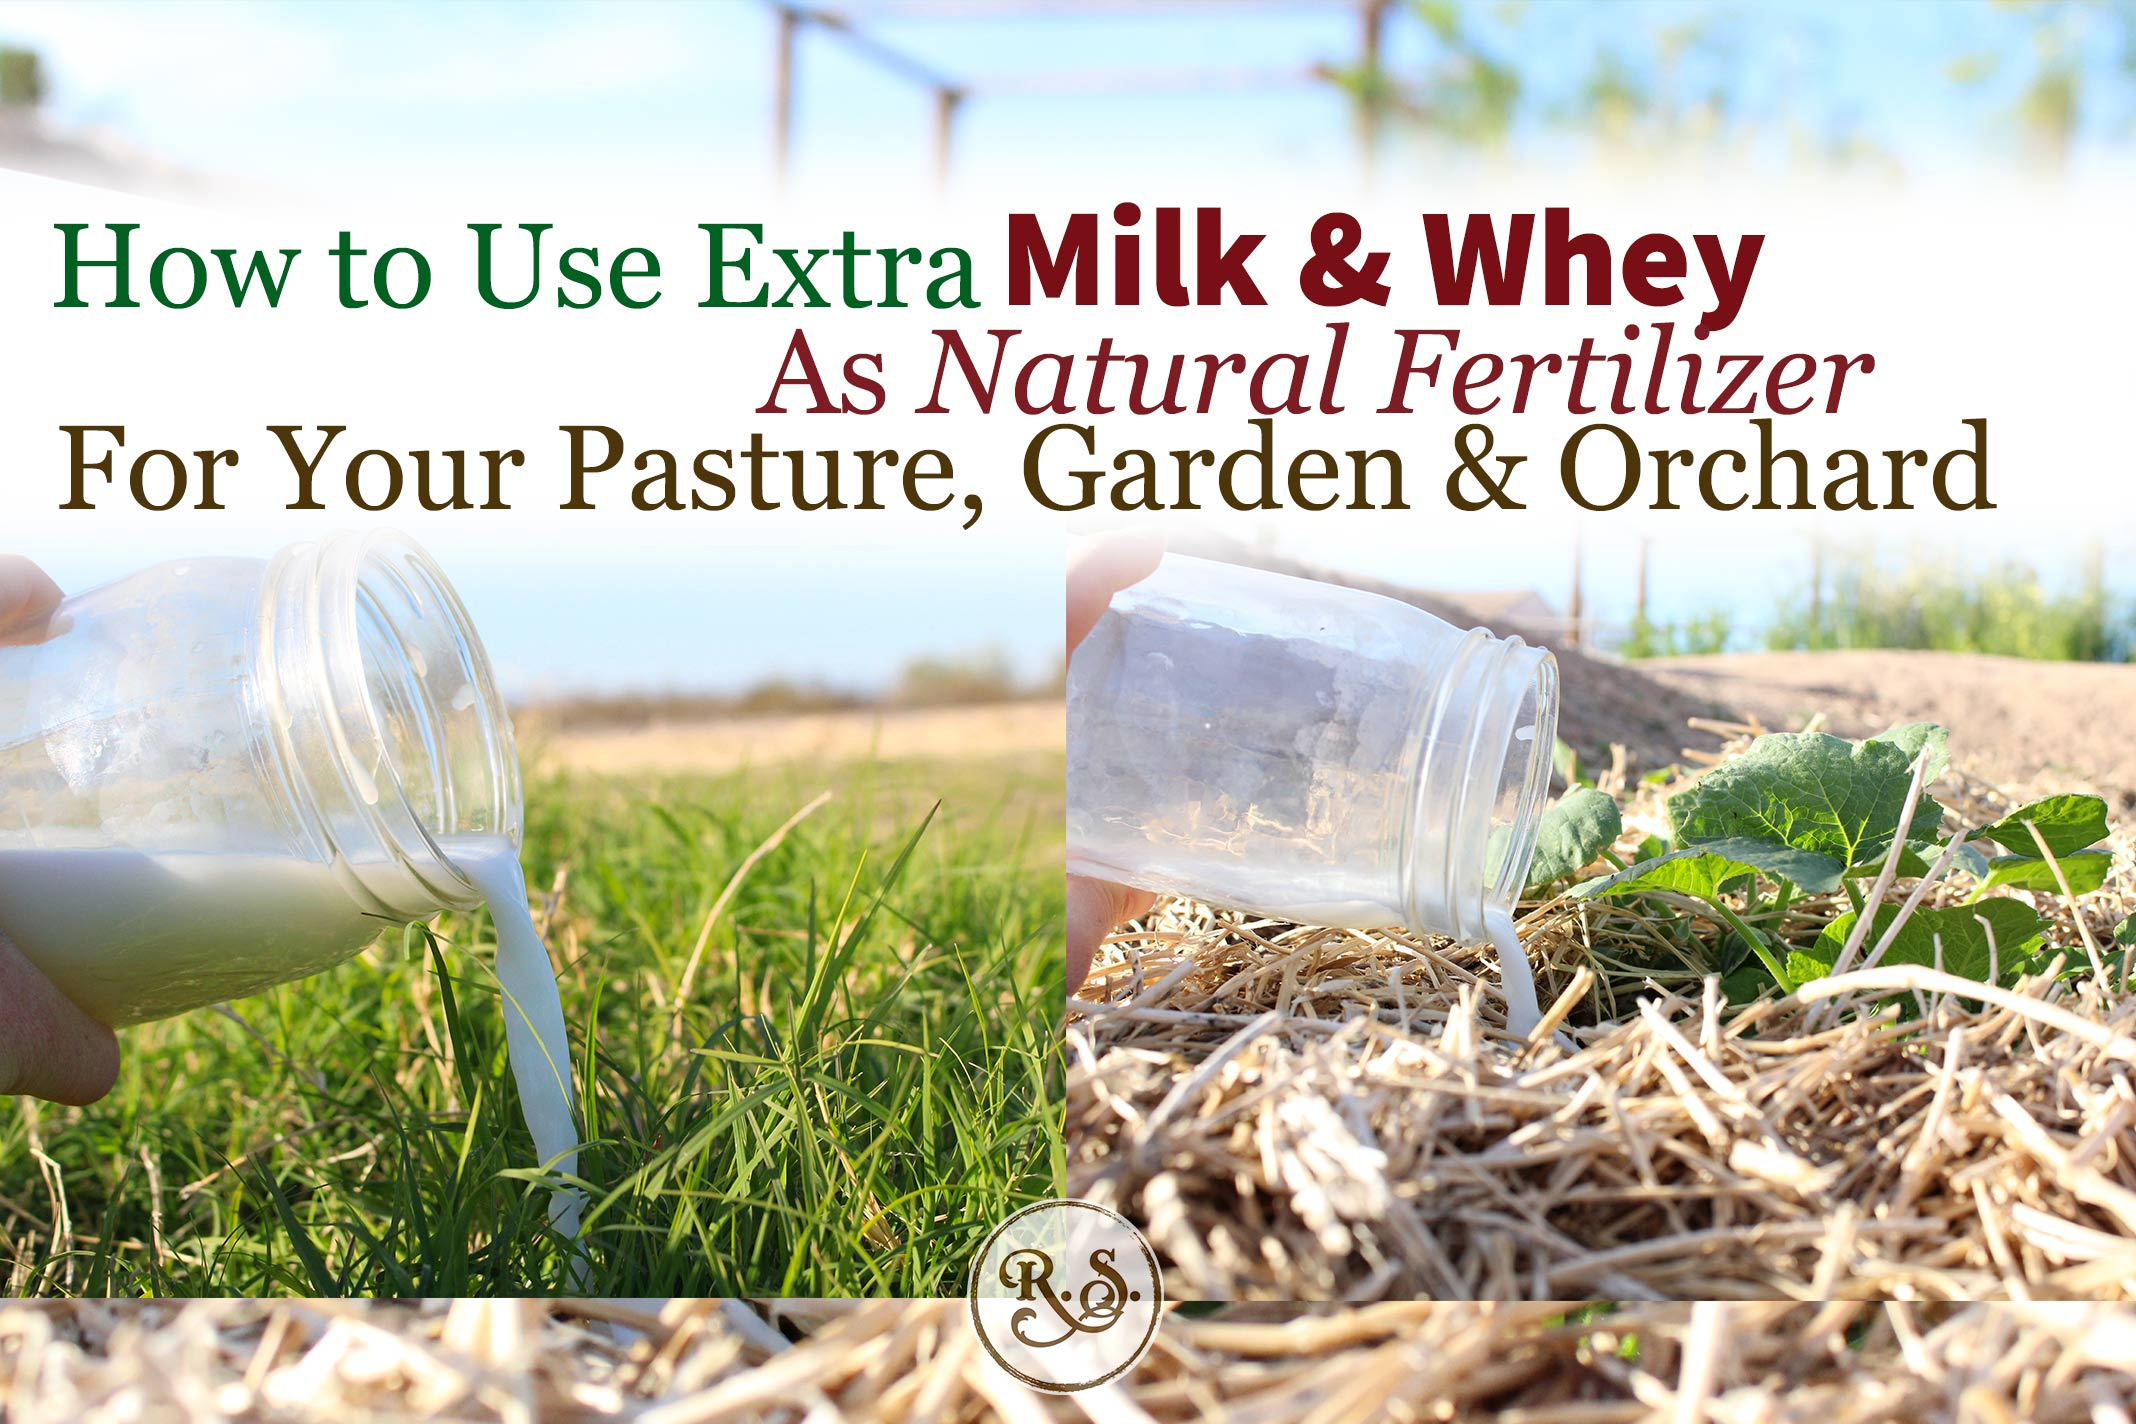 Extra milk or whey is an amazing fertilizer to build Organic fertility! In your orchard, pasture and garden it is a completely natural, holistic and Organic option.